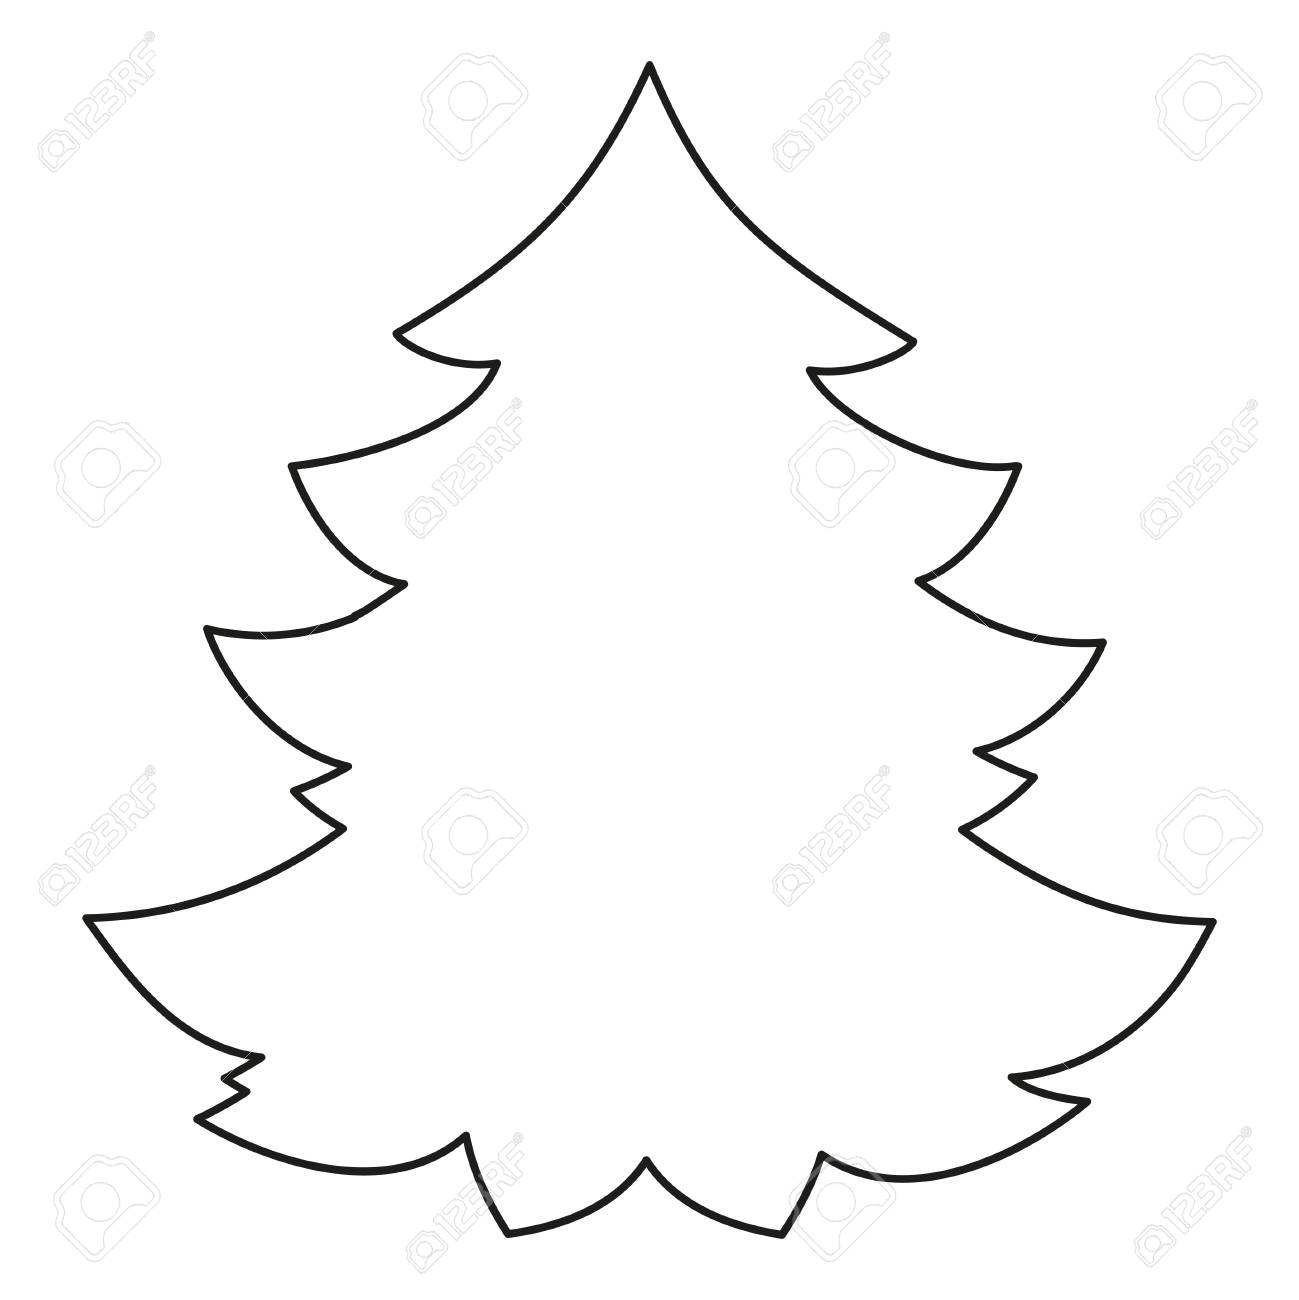 - Line Art Black And White Christmas Tree. Coloring Book Page For